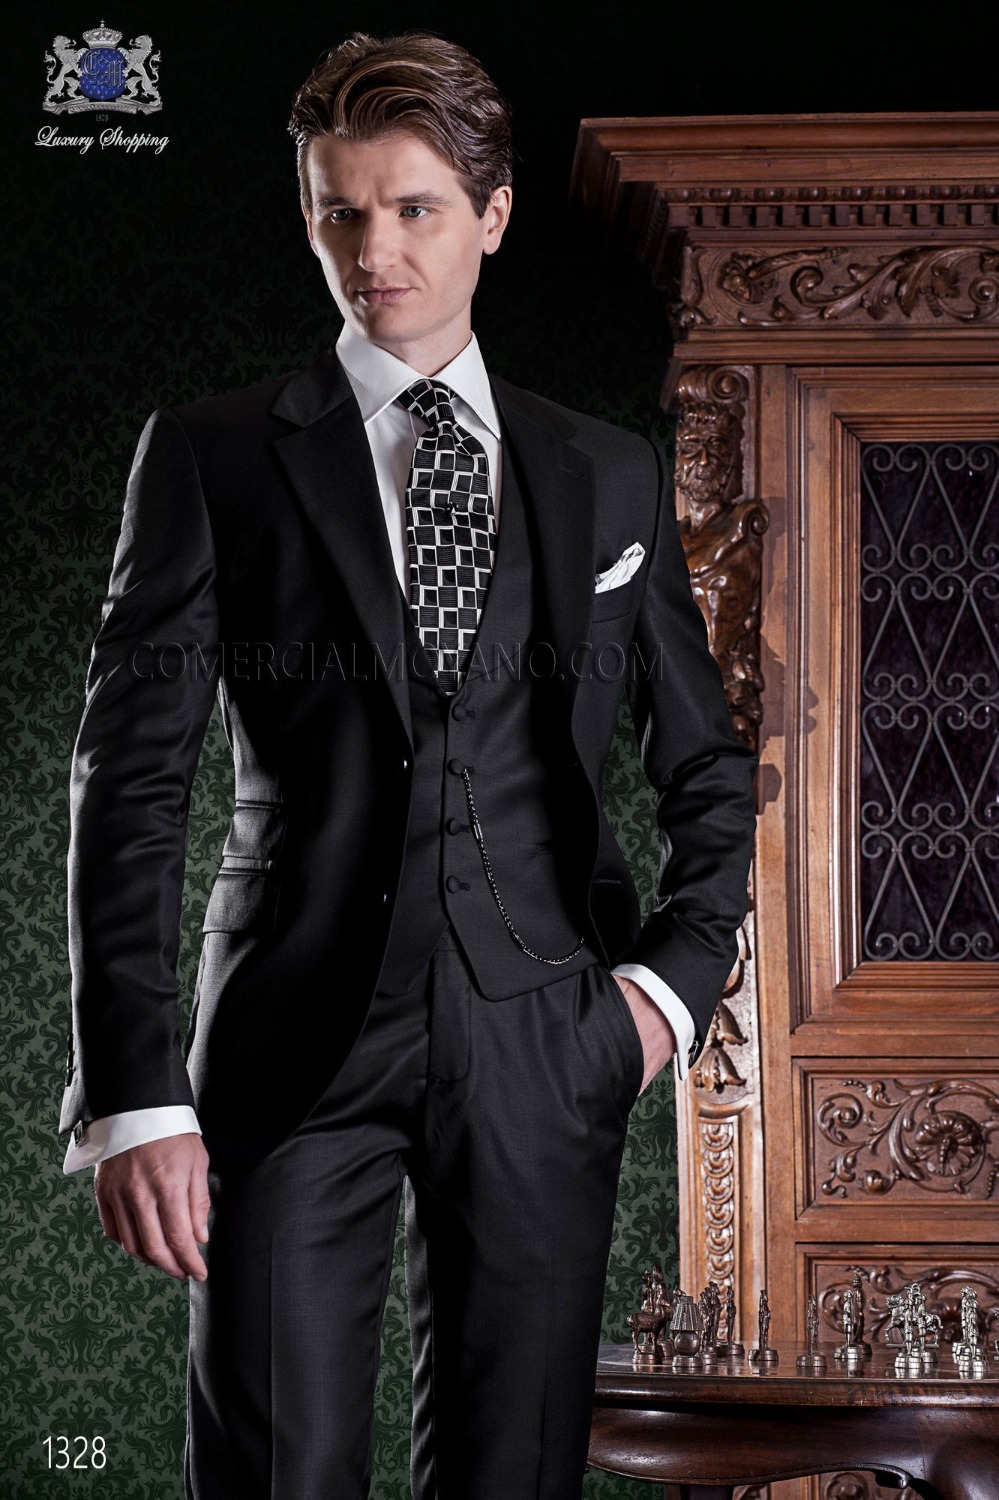 New Arrival Hot Selling Black Business Mens Suits Wedding Groom Tuxedos For Men 3 Piece Groomsman Mens Prom Suits Costume Homme